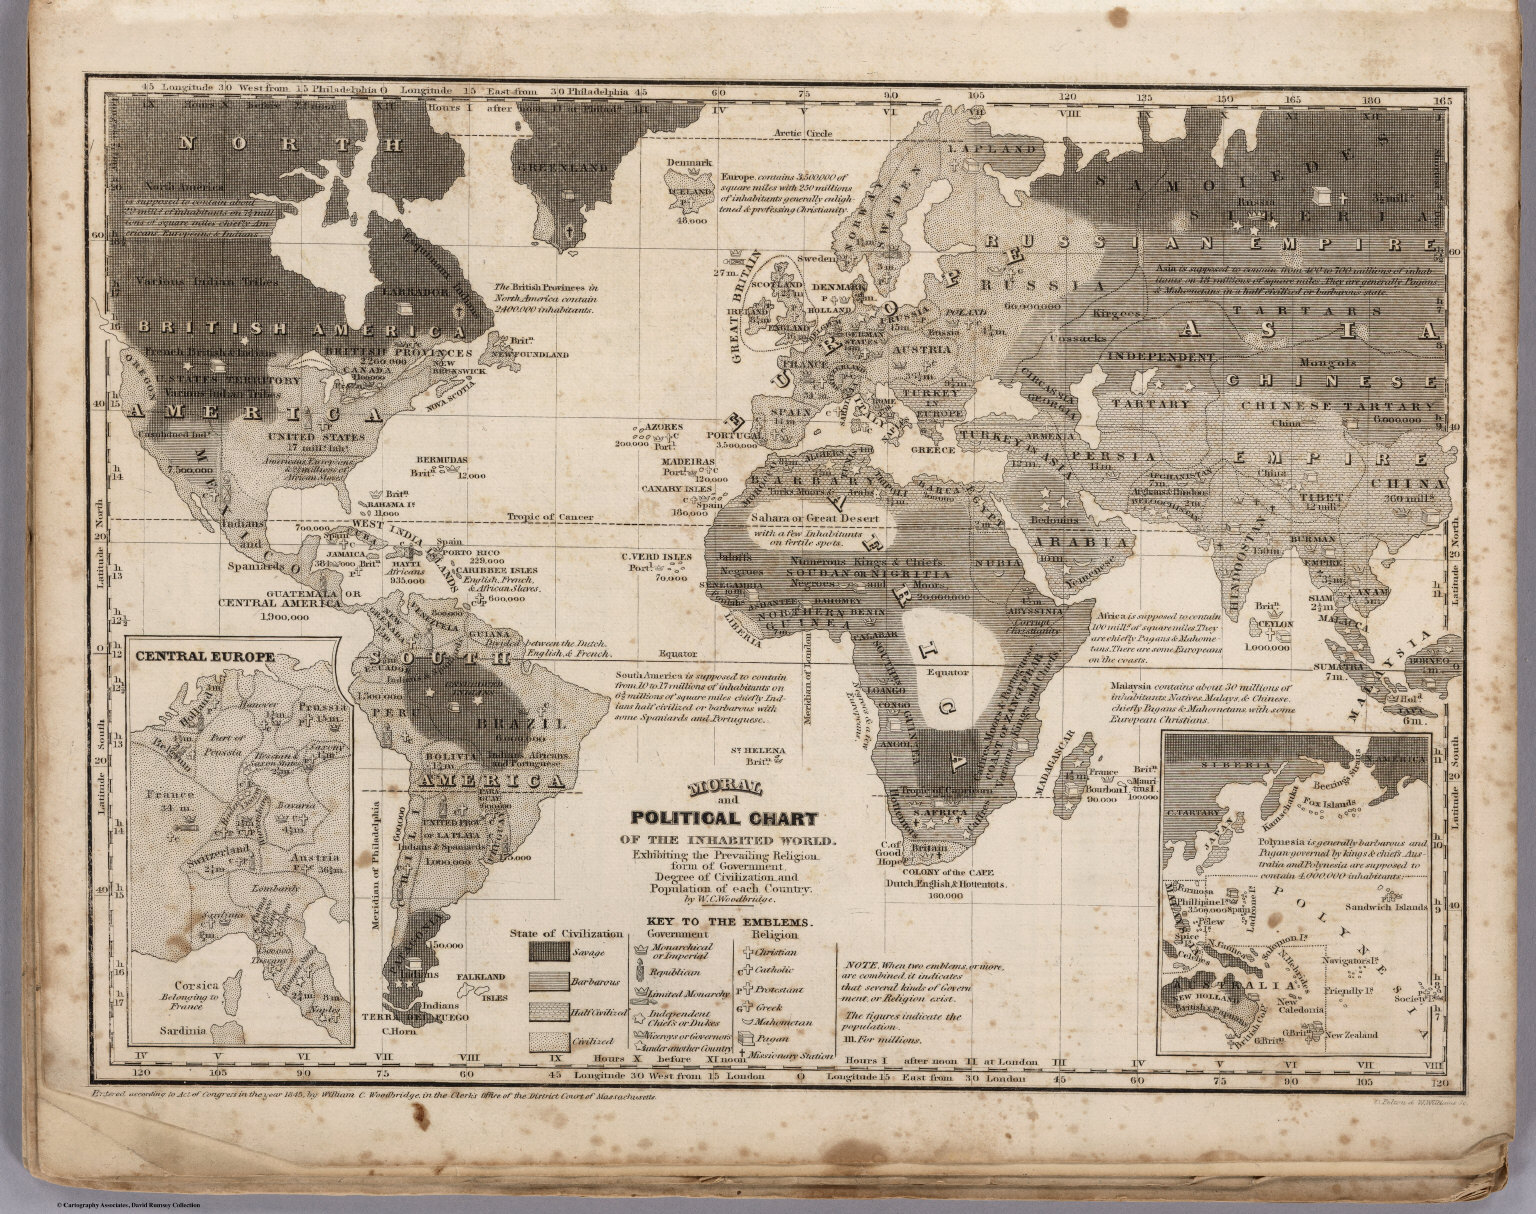 Moral and political chart of the inhabited world david rumsey moral and political chart of the inhabited world gumiabroncs Image collections